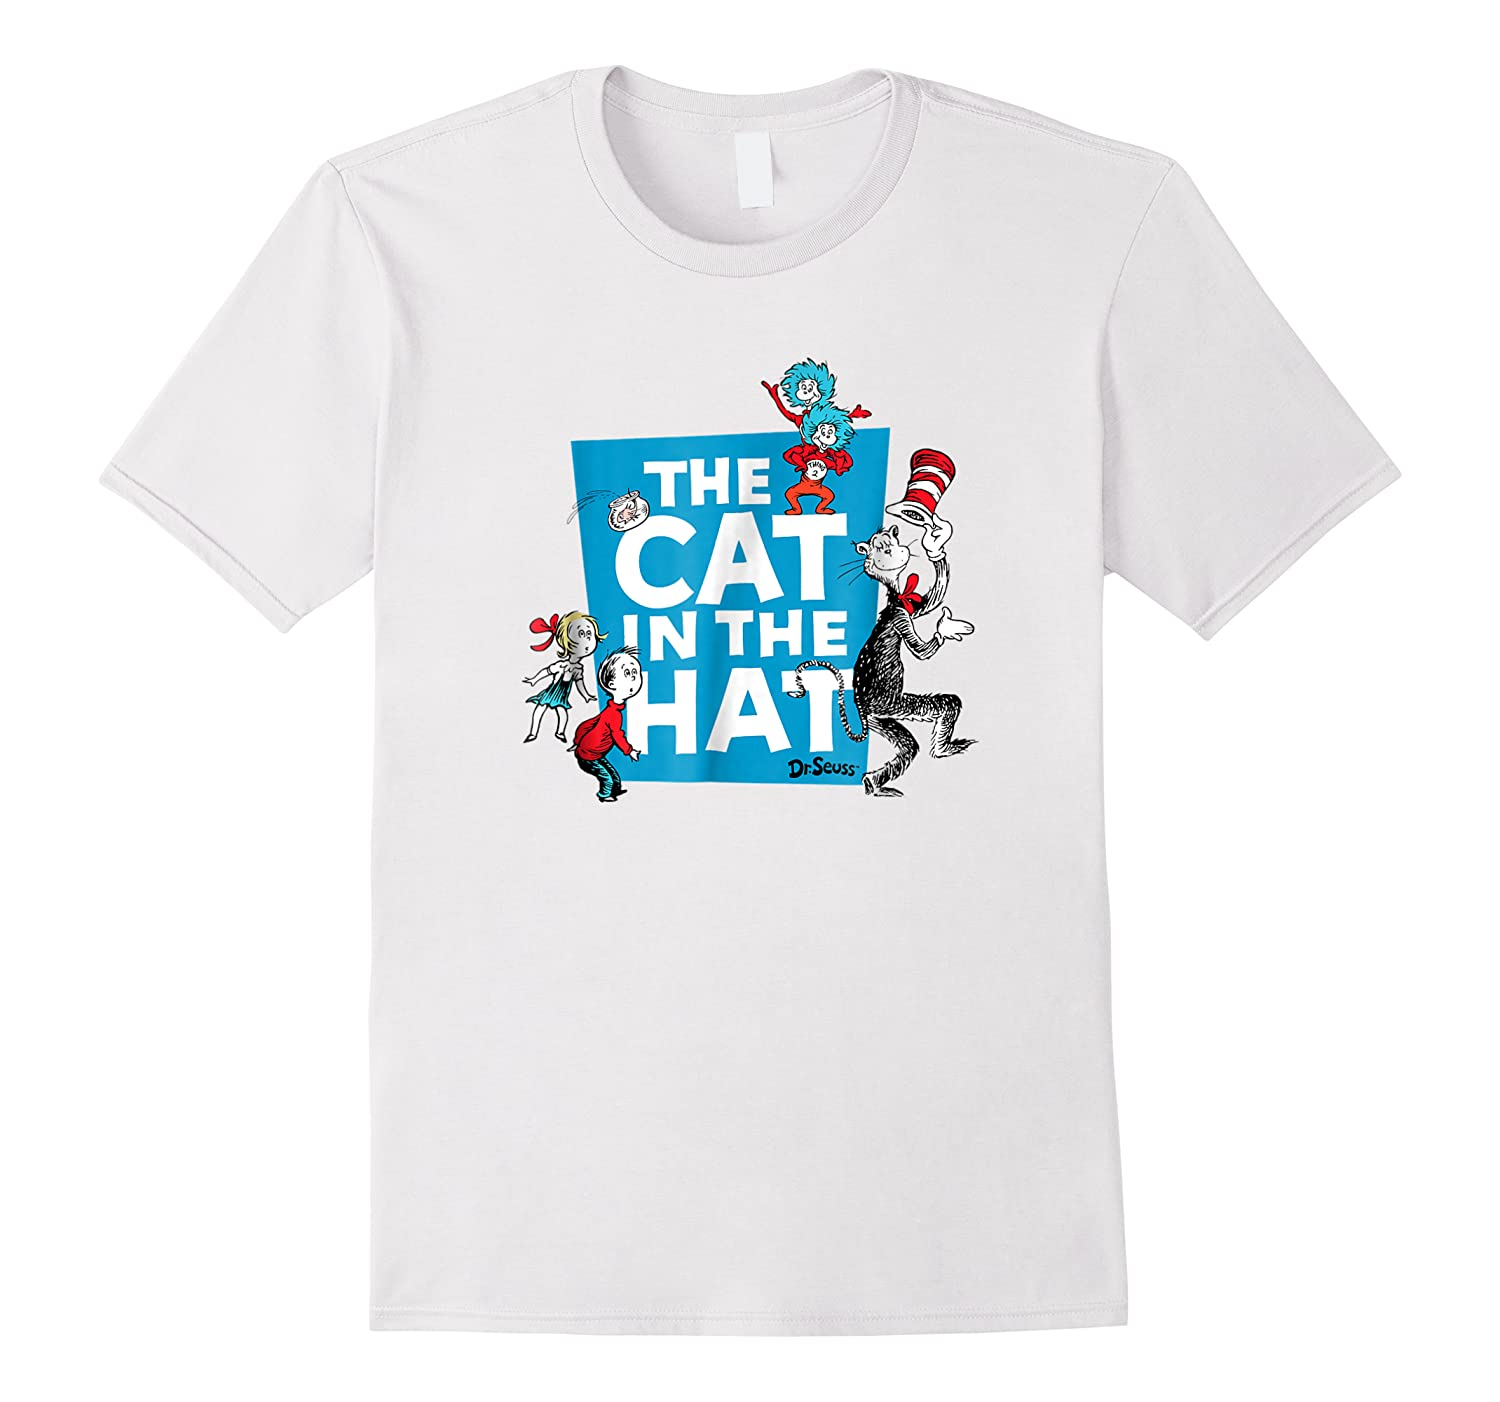 Dr Seuss The Cat In The Hat Characters Shirts